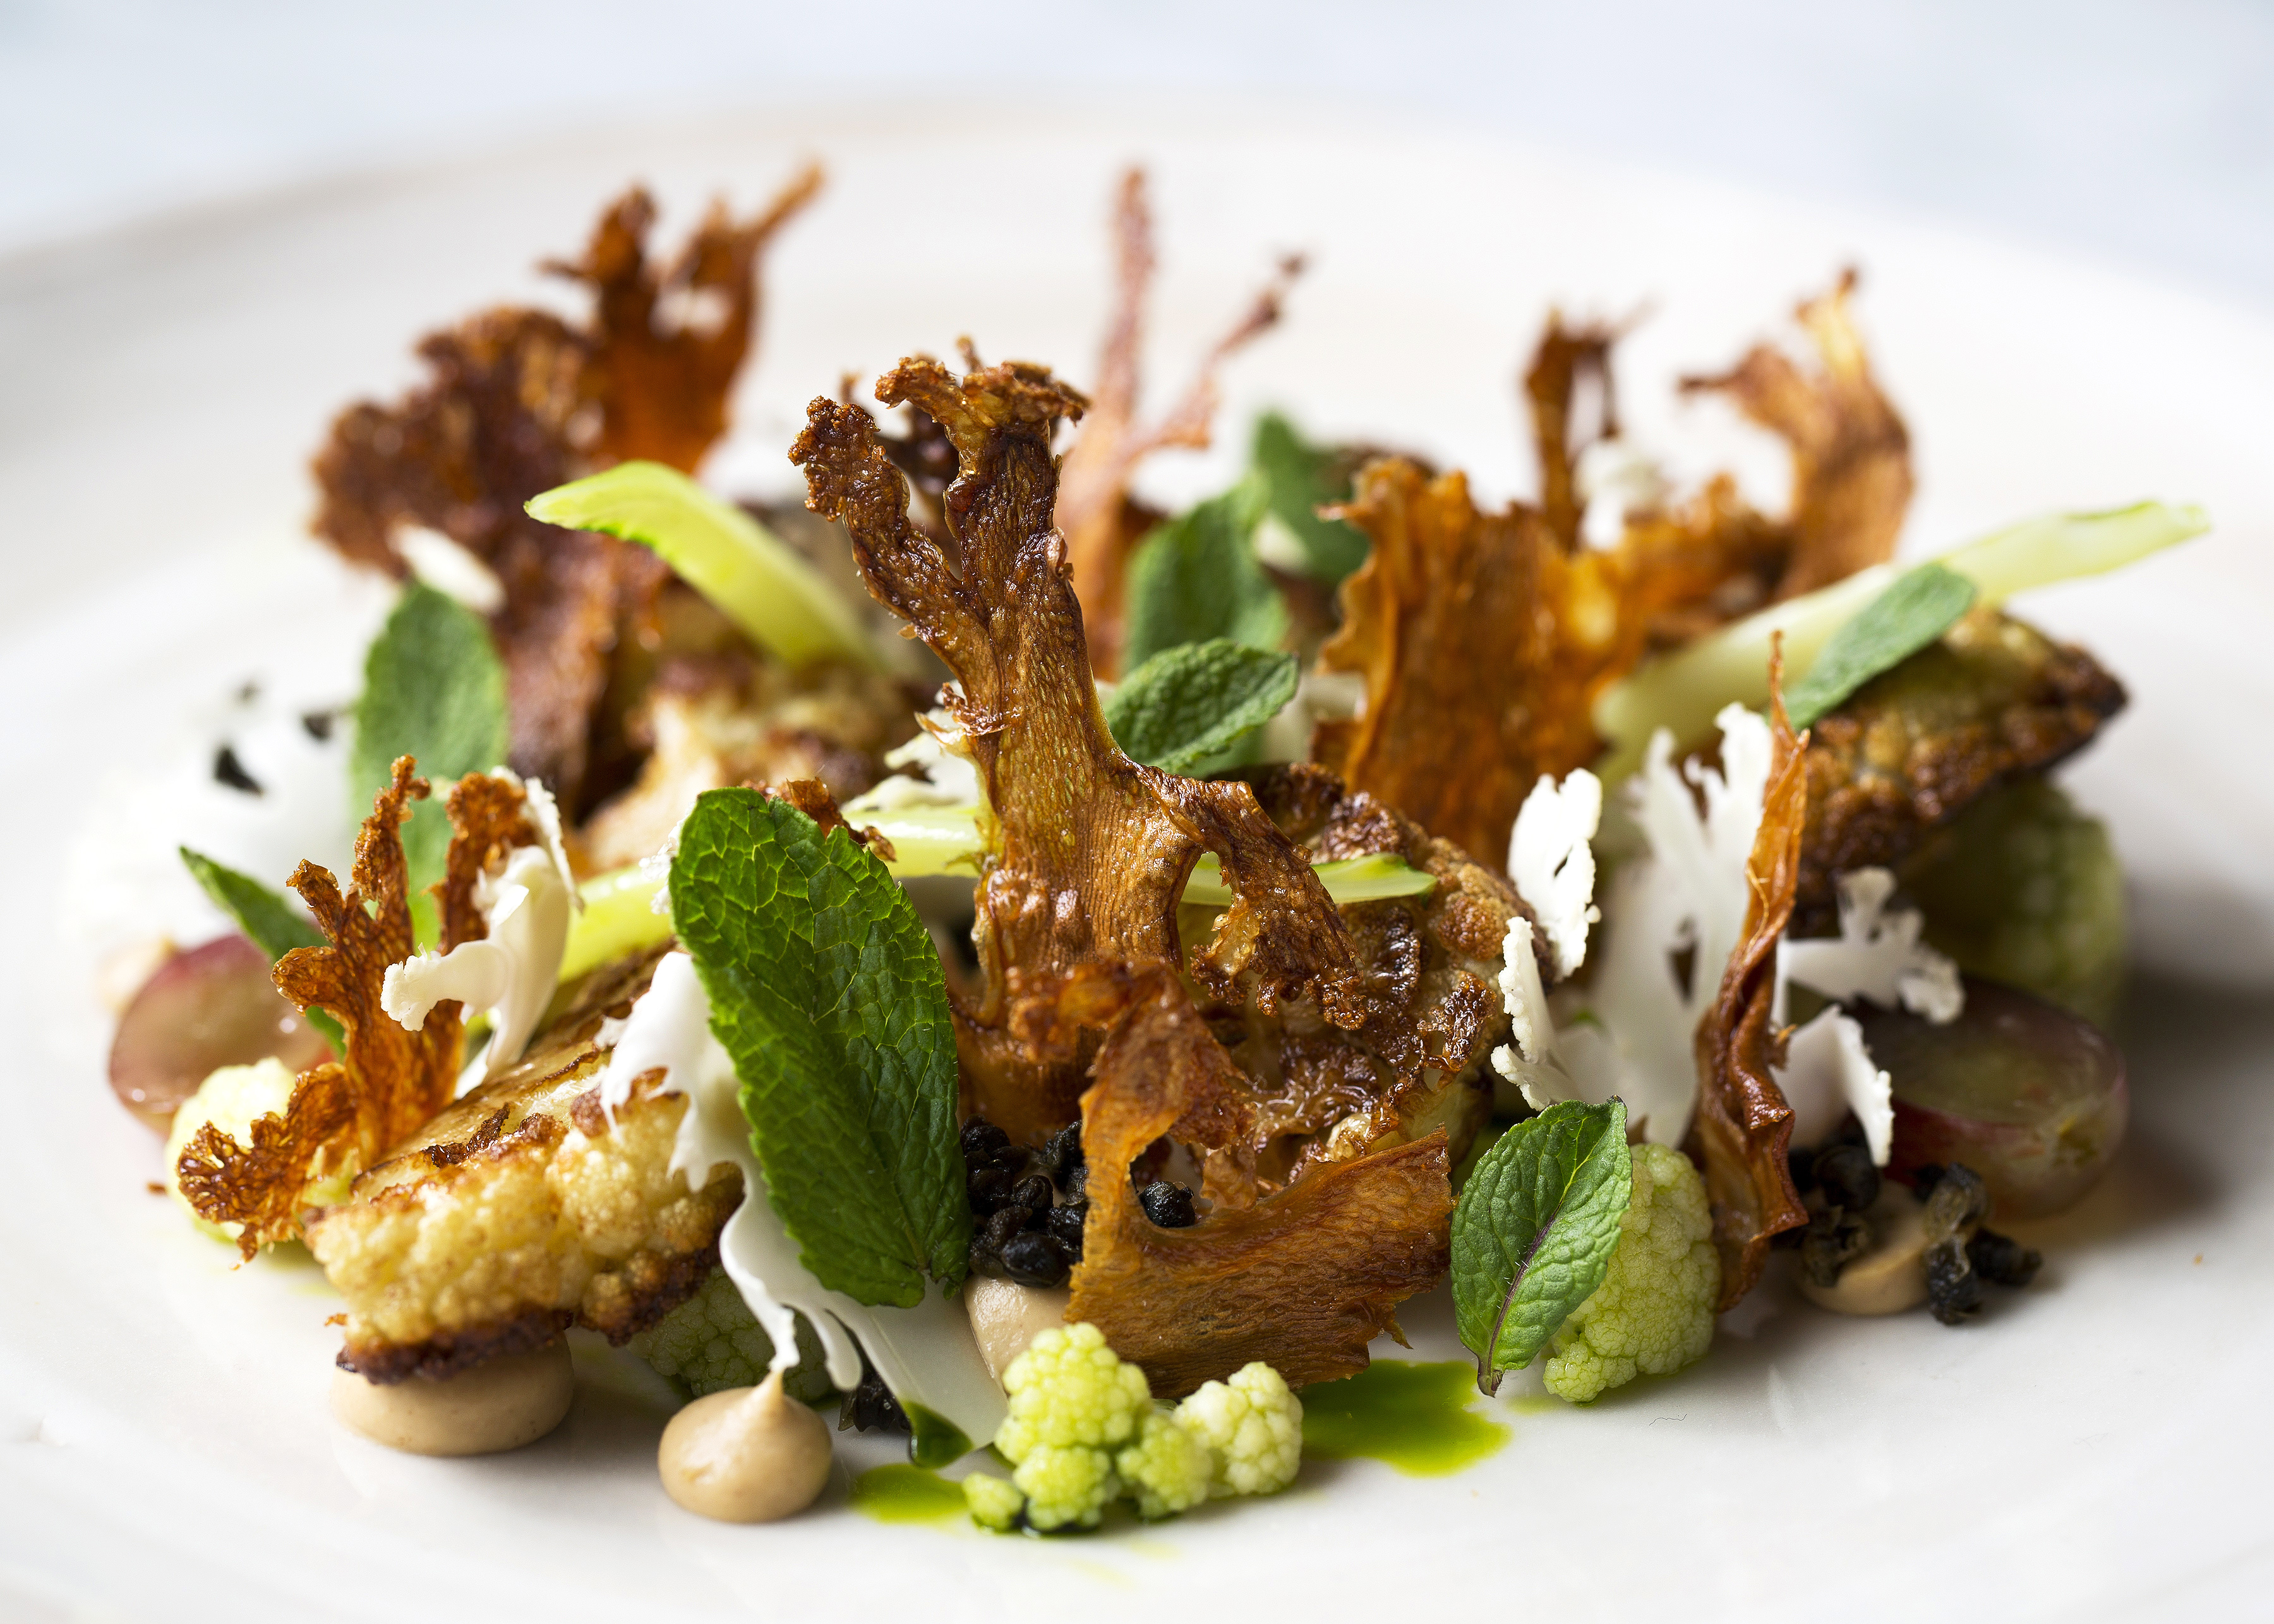 Vegetarian Recipes   Great British Chefs. Fine Dining Vegetarian Dishes. Home Design Ideas